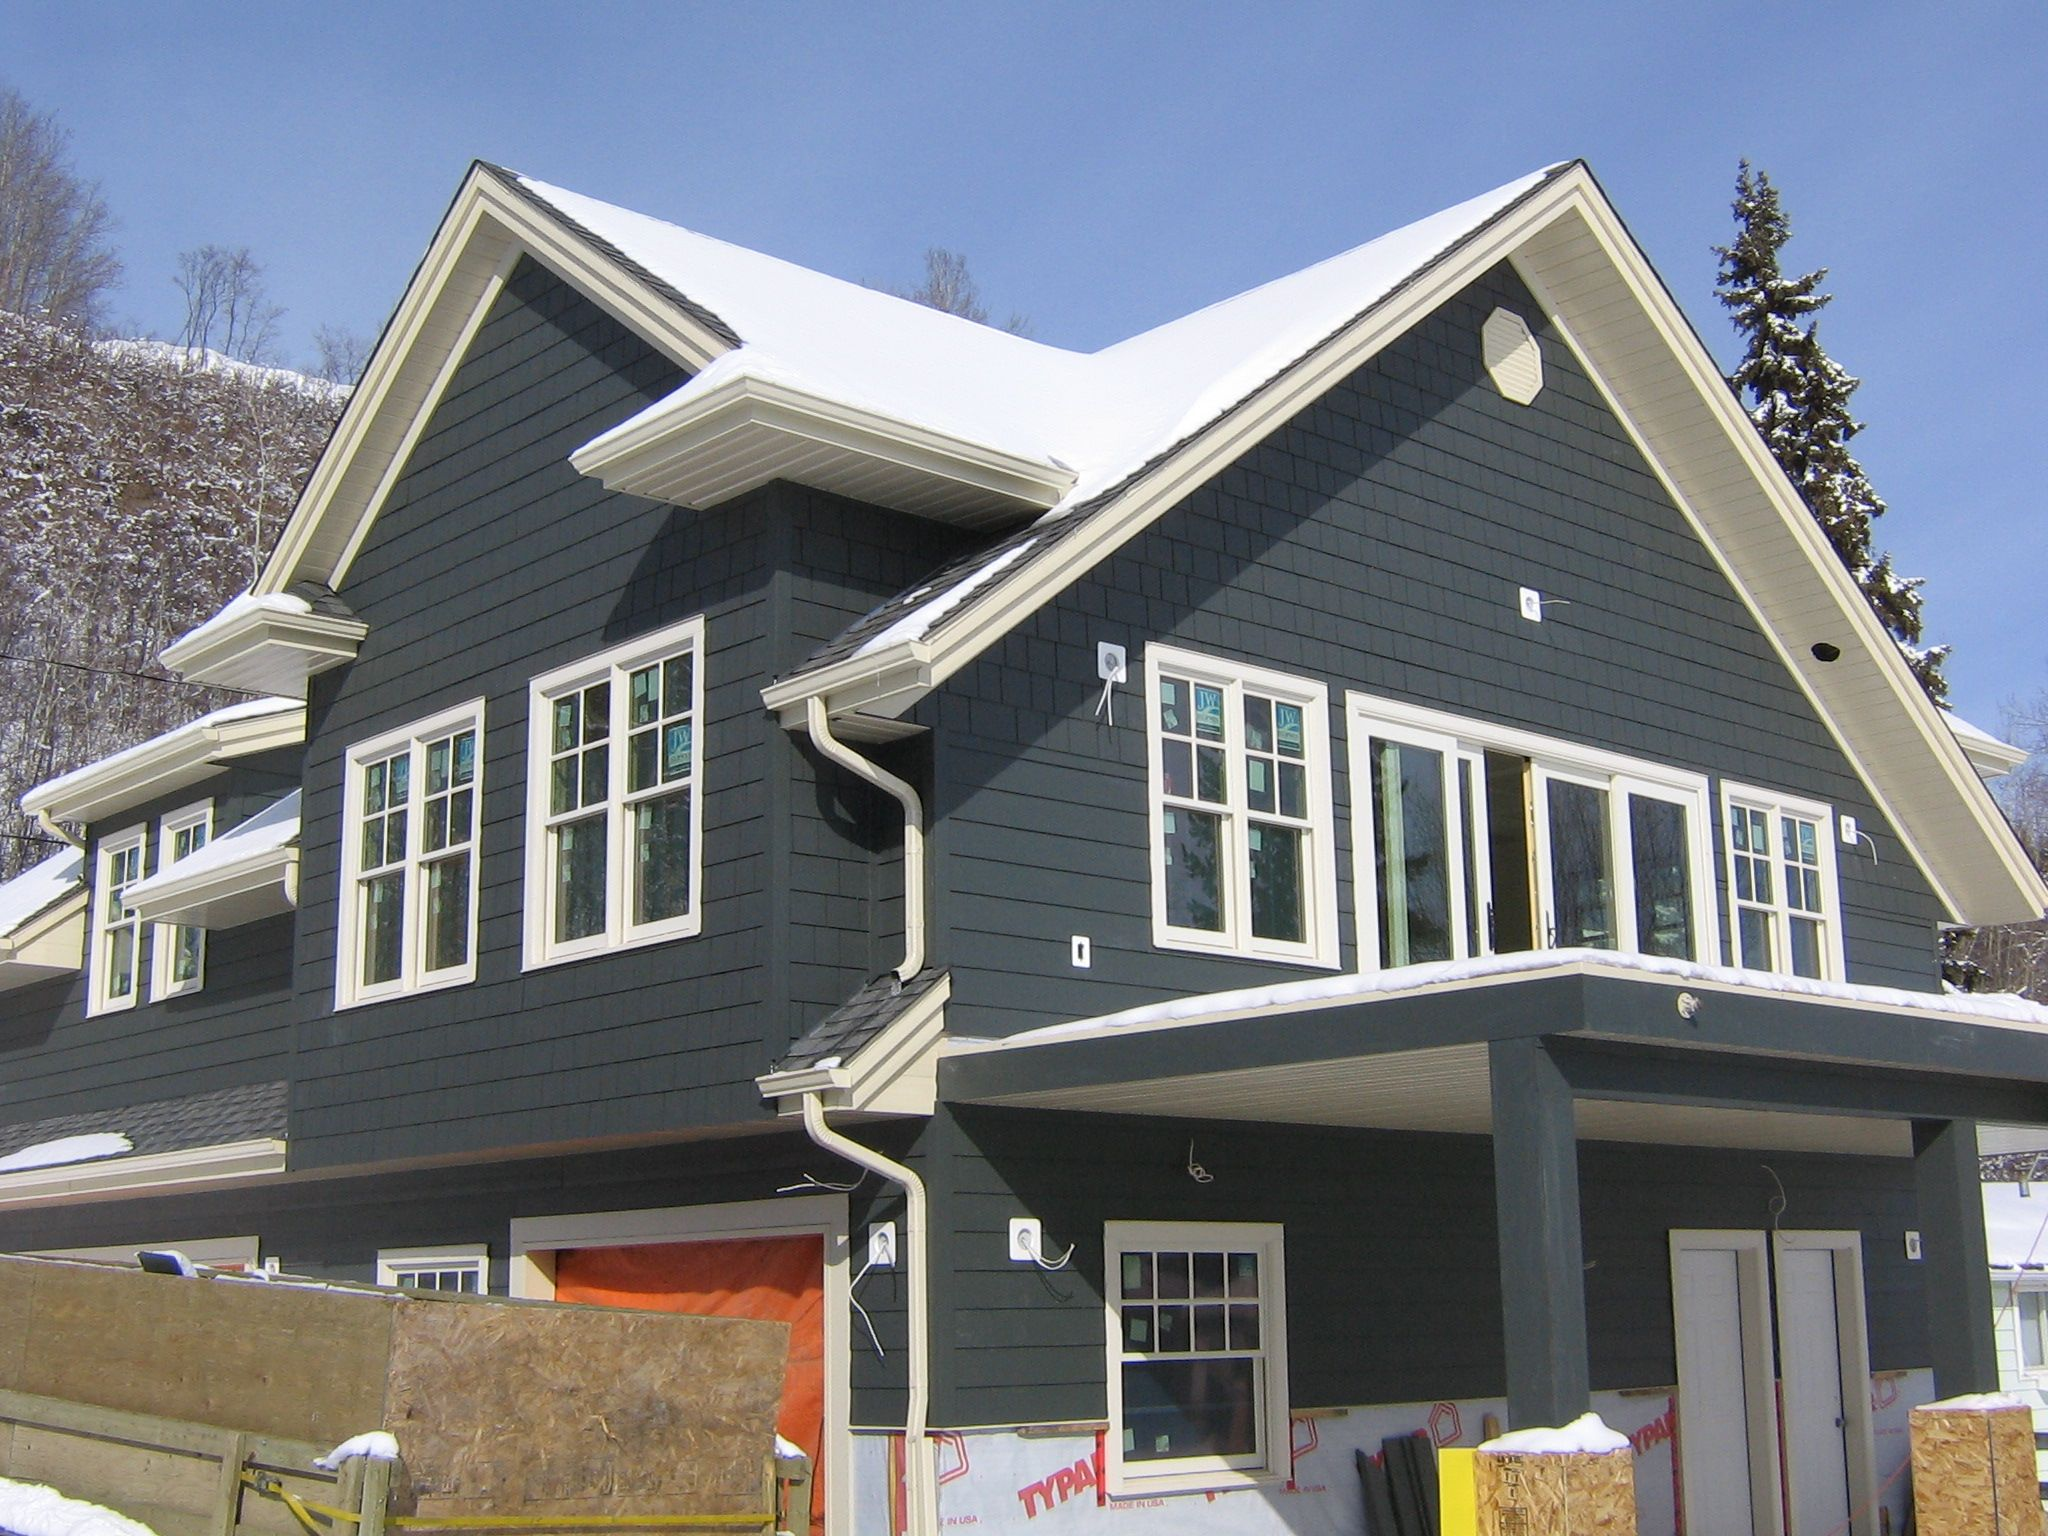 Iron Grey Hardie Siding Thoughts House Pinterest Iron - Exterior hardie board